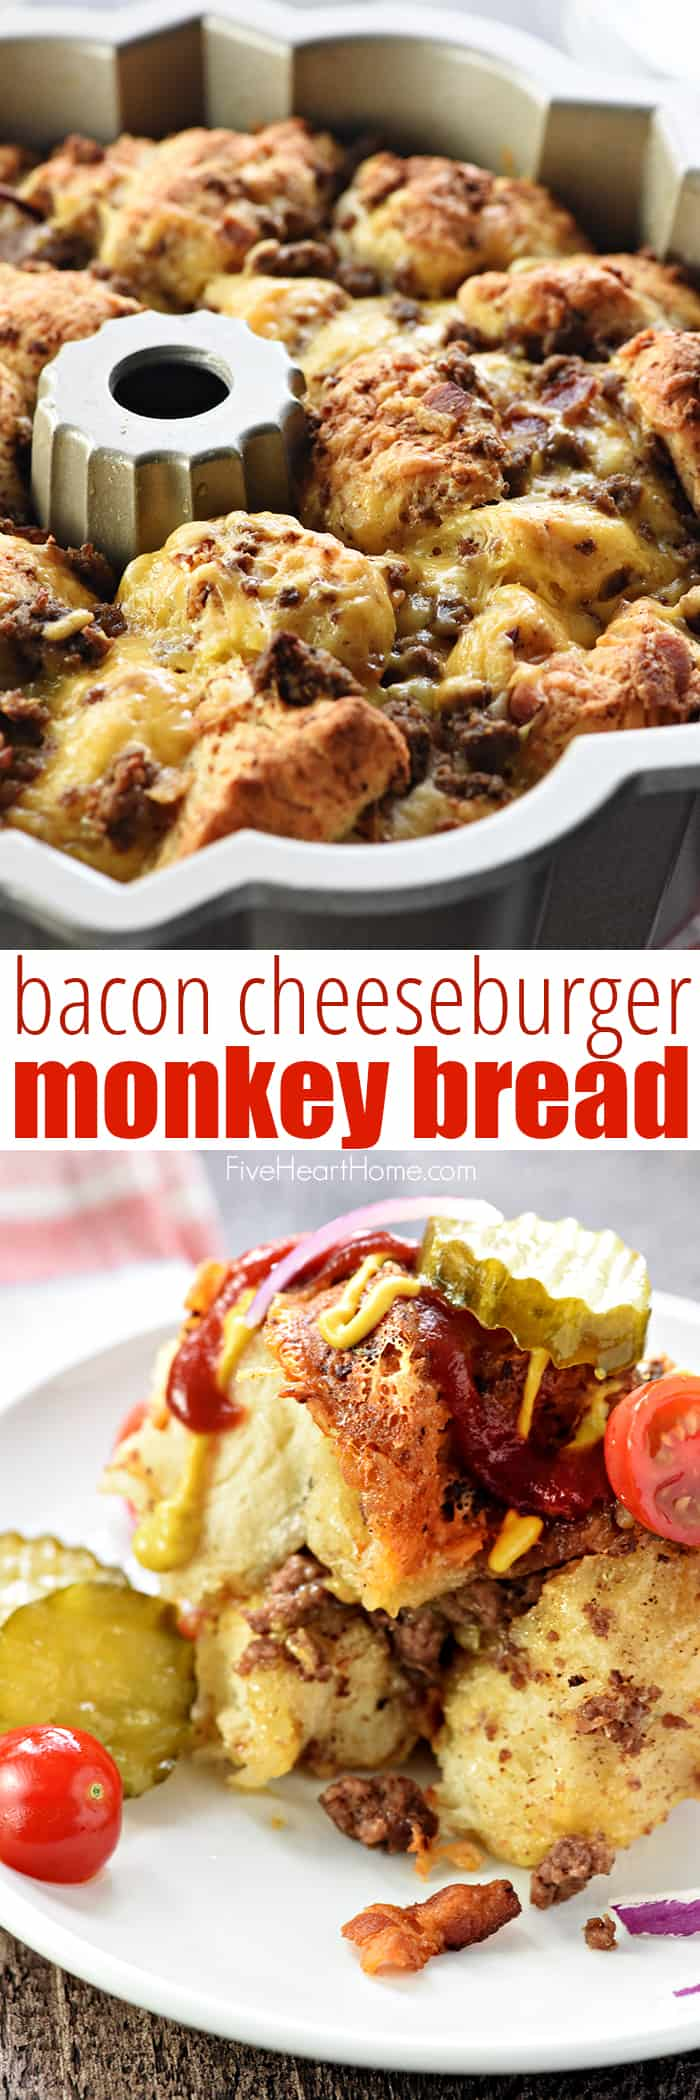 Bacon Cheeseburger Monkey Bread in pan and on plate